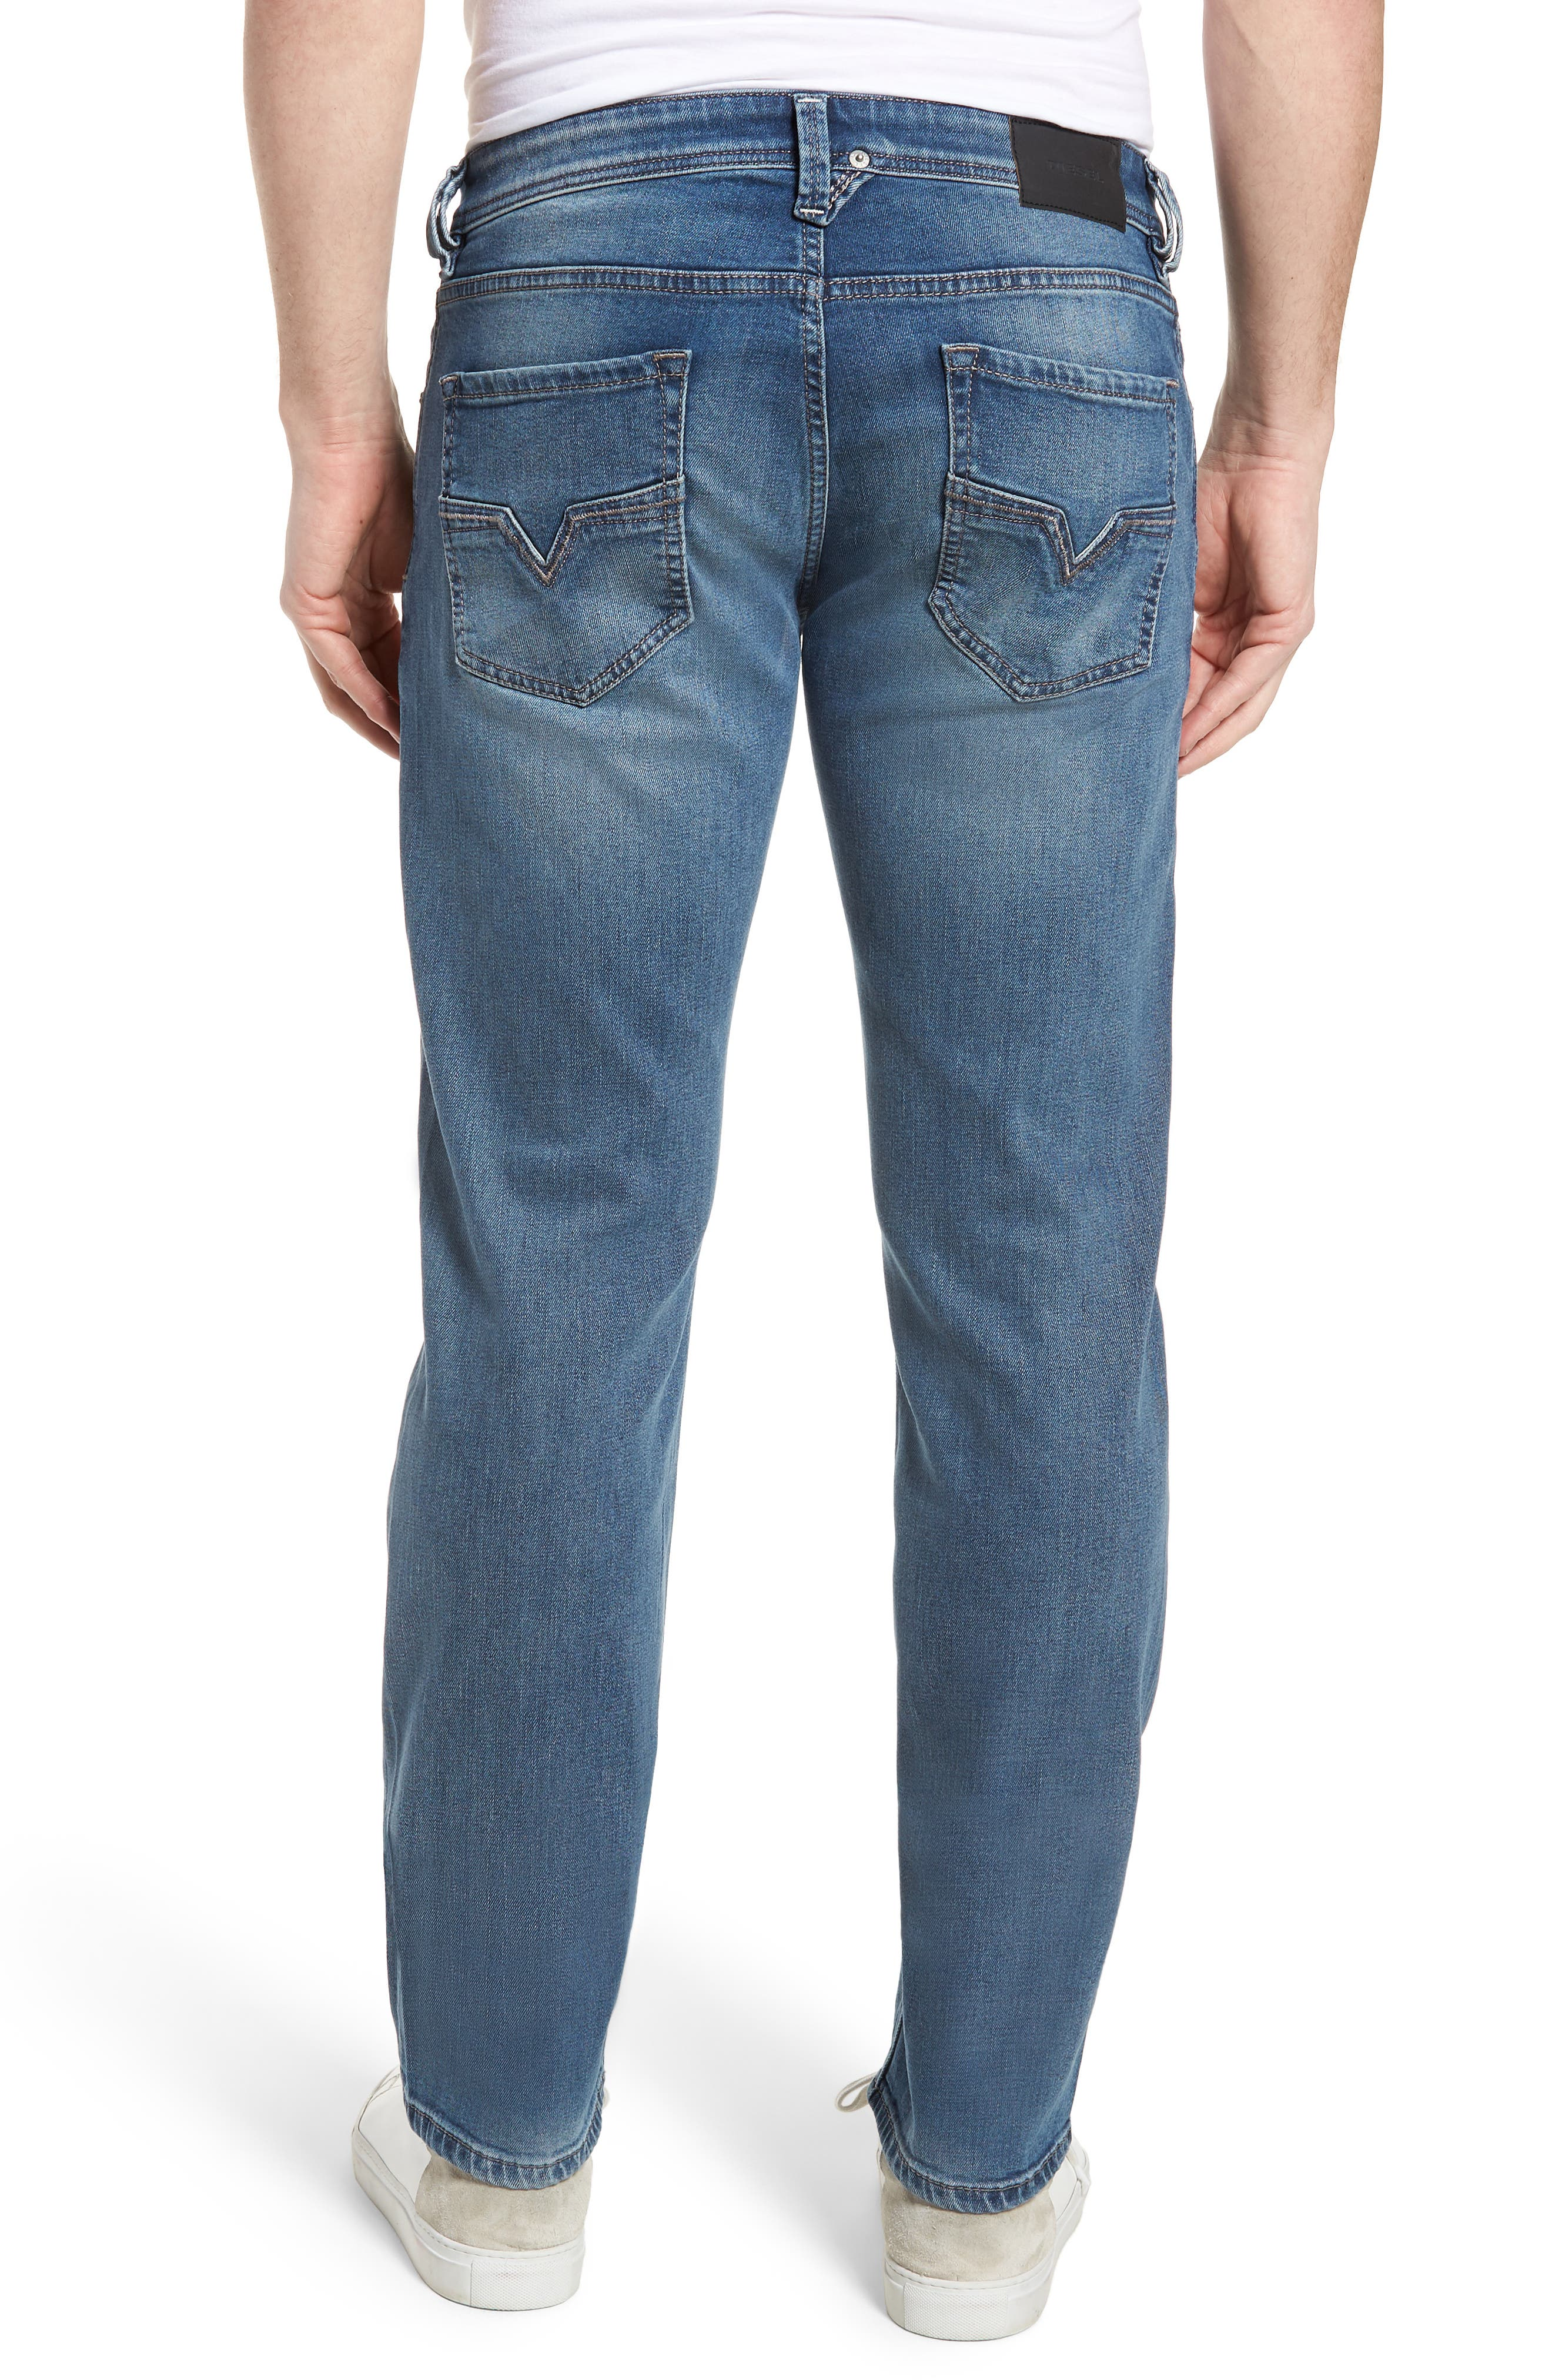 Larkee Relaxed Fit Jeans,                             Alternate thumbnail 2, color,                             900